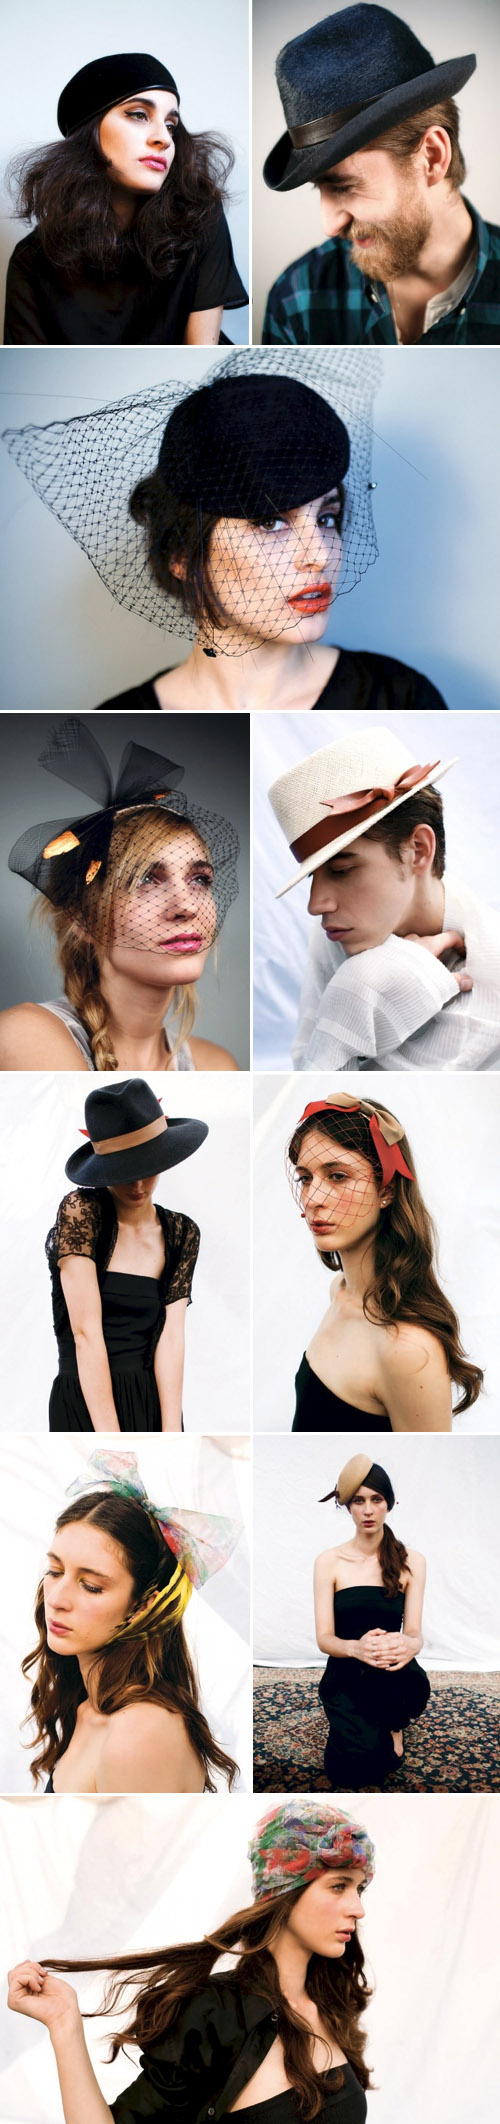 stylish handmade bridal hats, veils and hair accessories by Yestadt Millinery